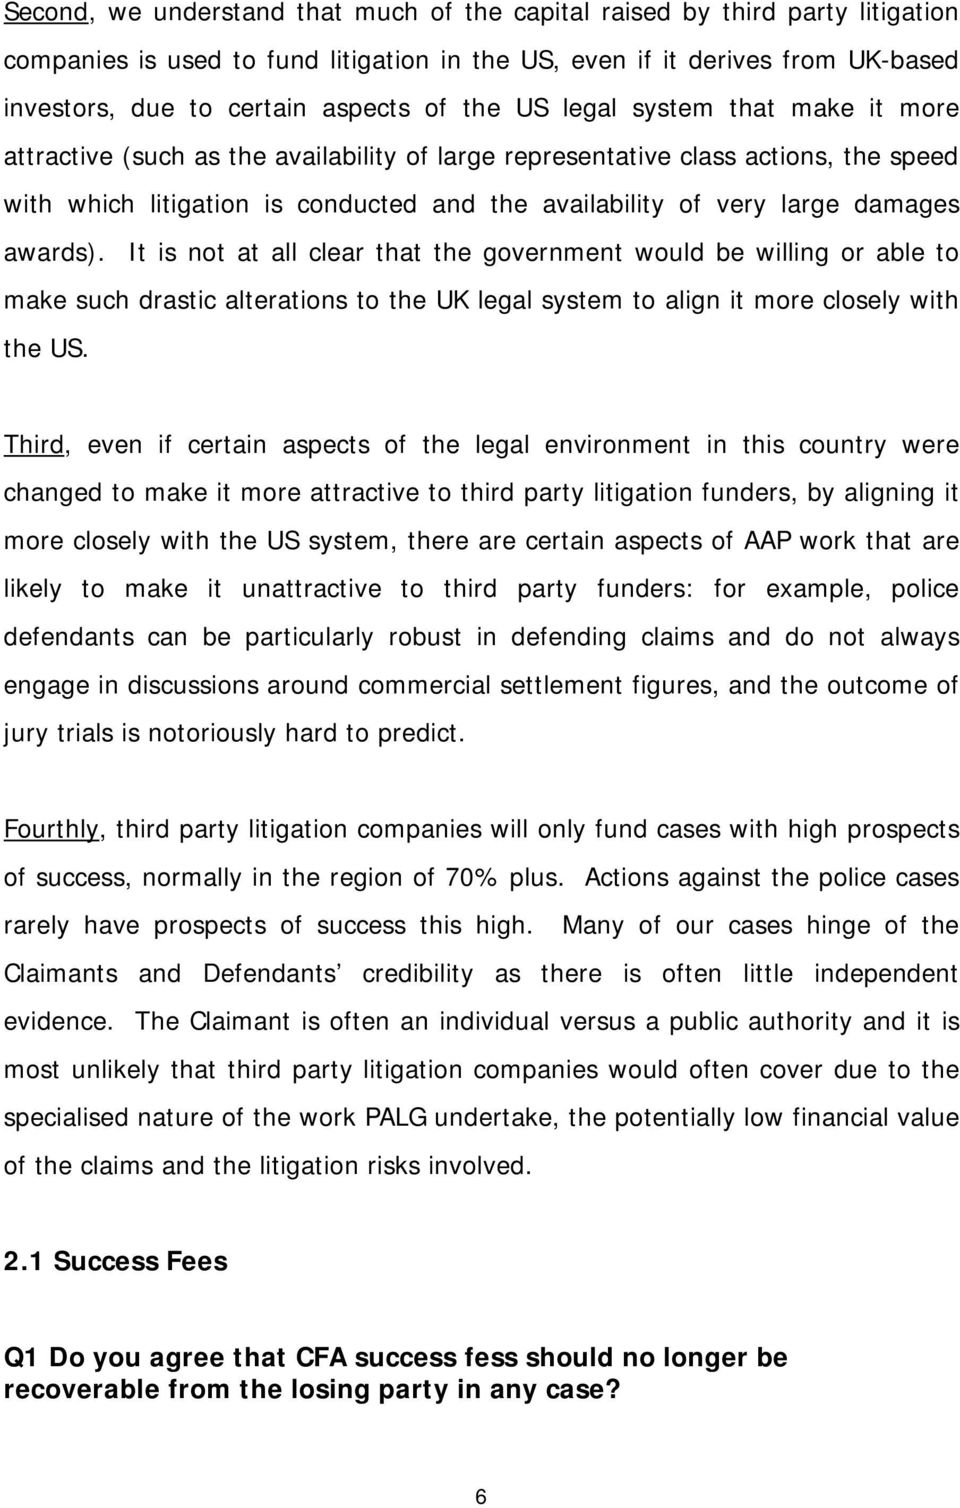 damages awards). It is not at all clear that the government would be willing or able to make such drastic alterations to the UK legal system to align it more closely with the US.